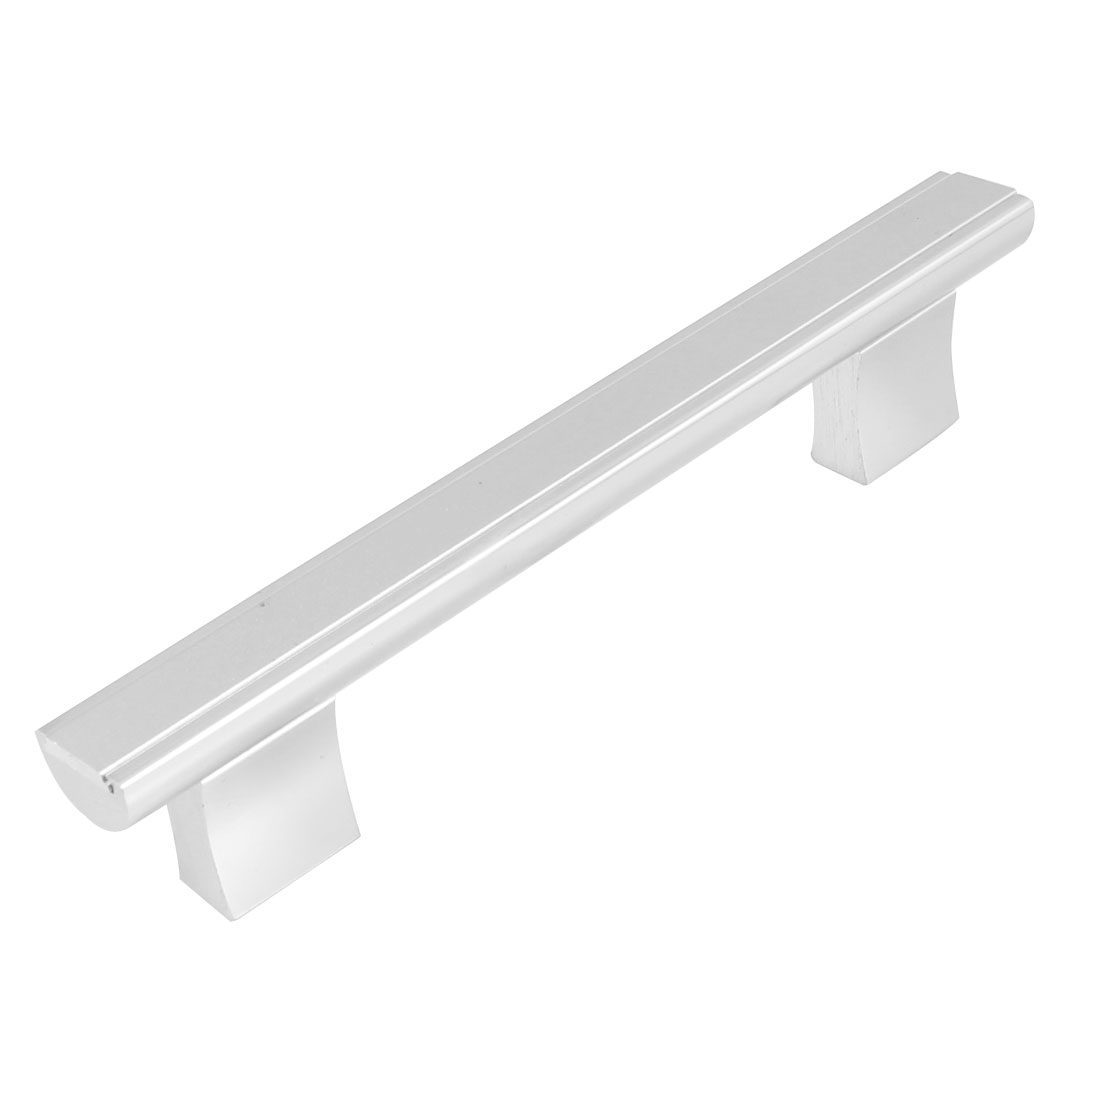 "Cupboard Cabinets Part Aluminum Bar Pull Handle 5.8"" Length"